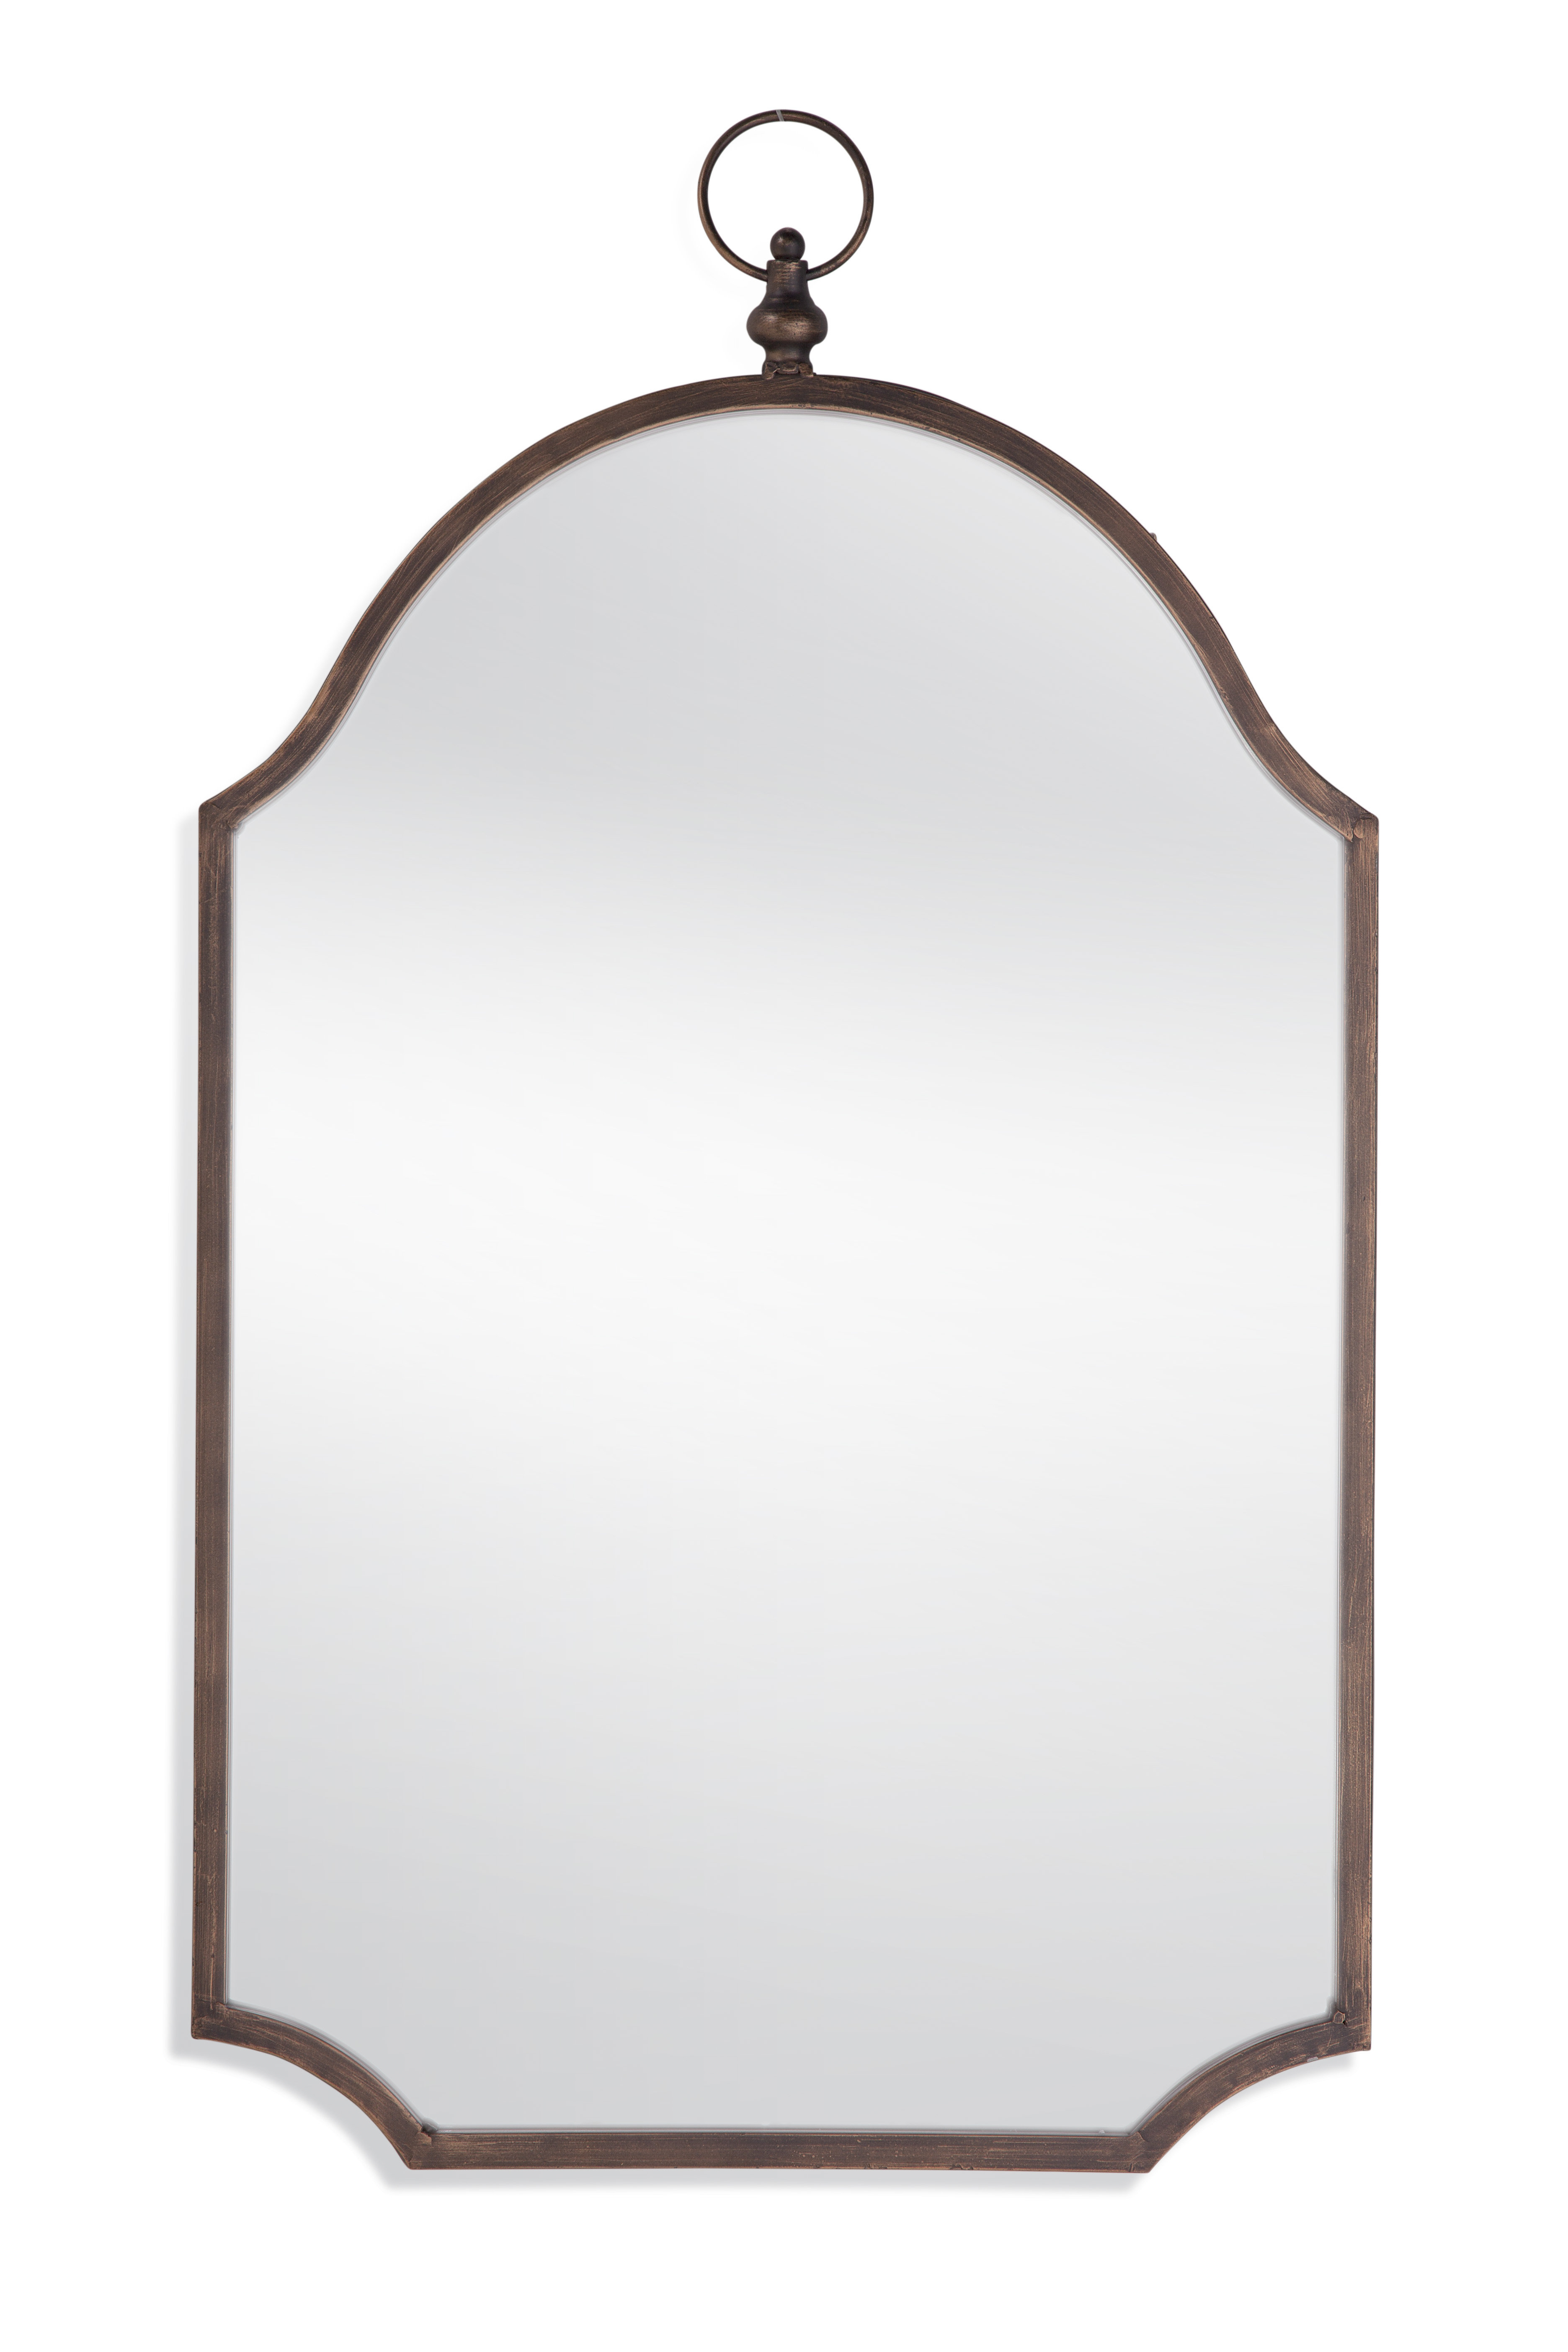 Inglaterra Accent Mirror With Bristol Accent Mirrors (Image 13 of 20)